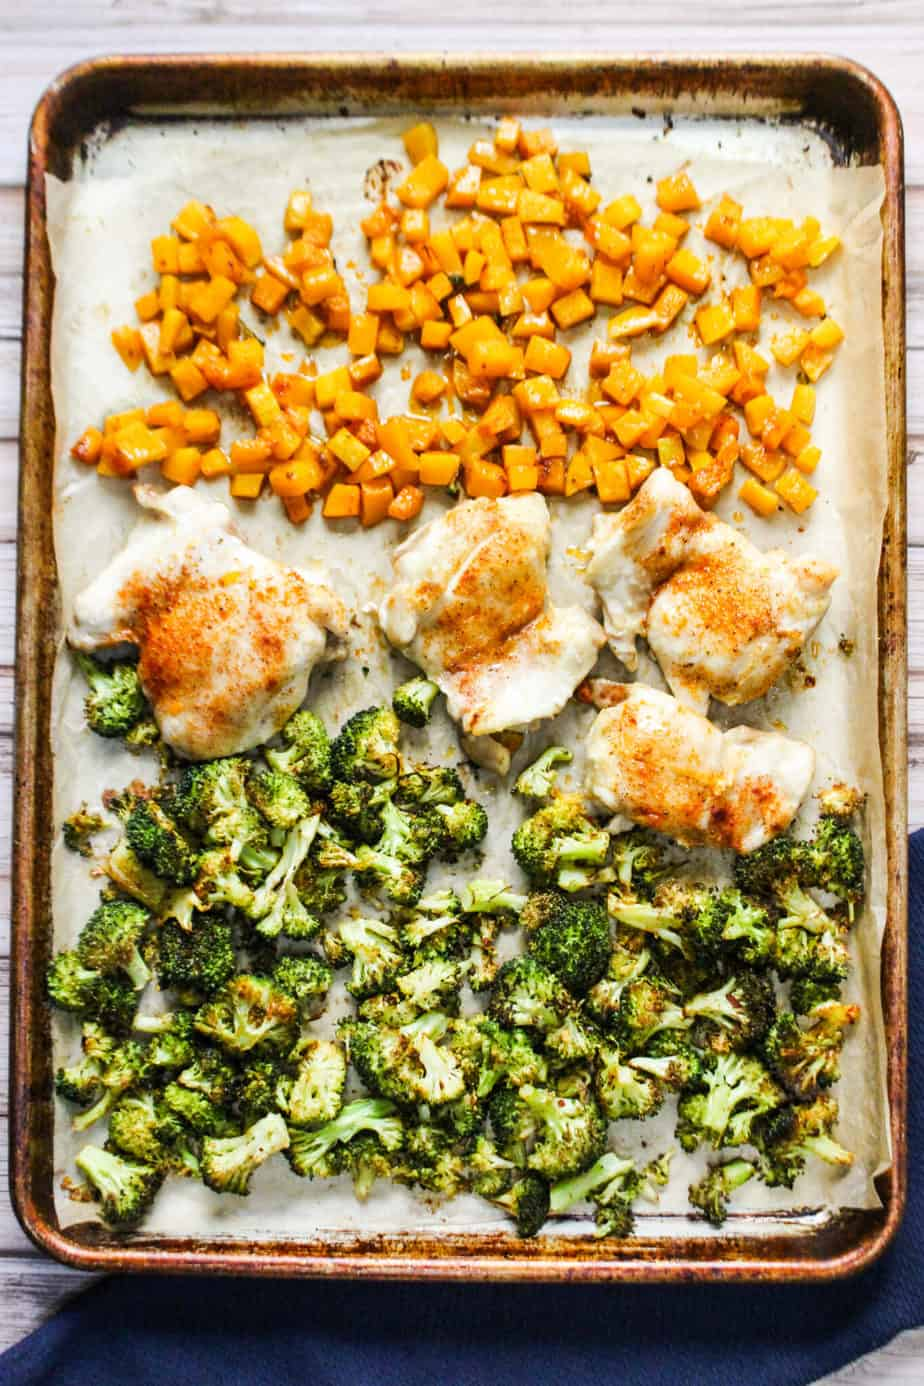 Chicken Thighs, Broccoli and Butternut Squash